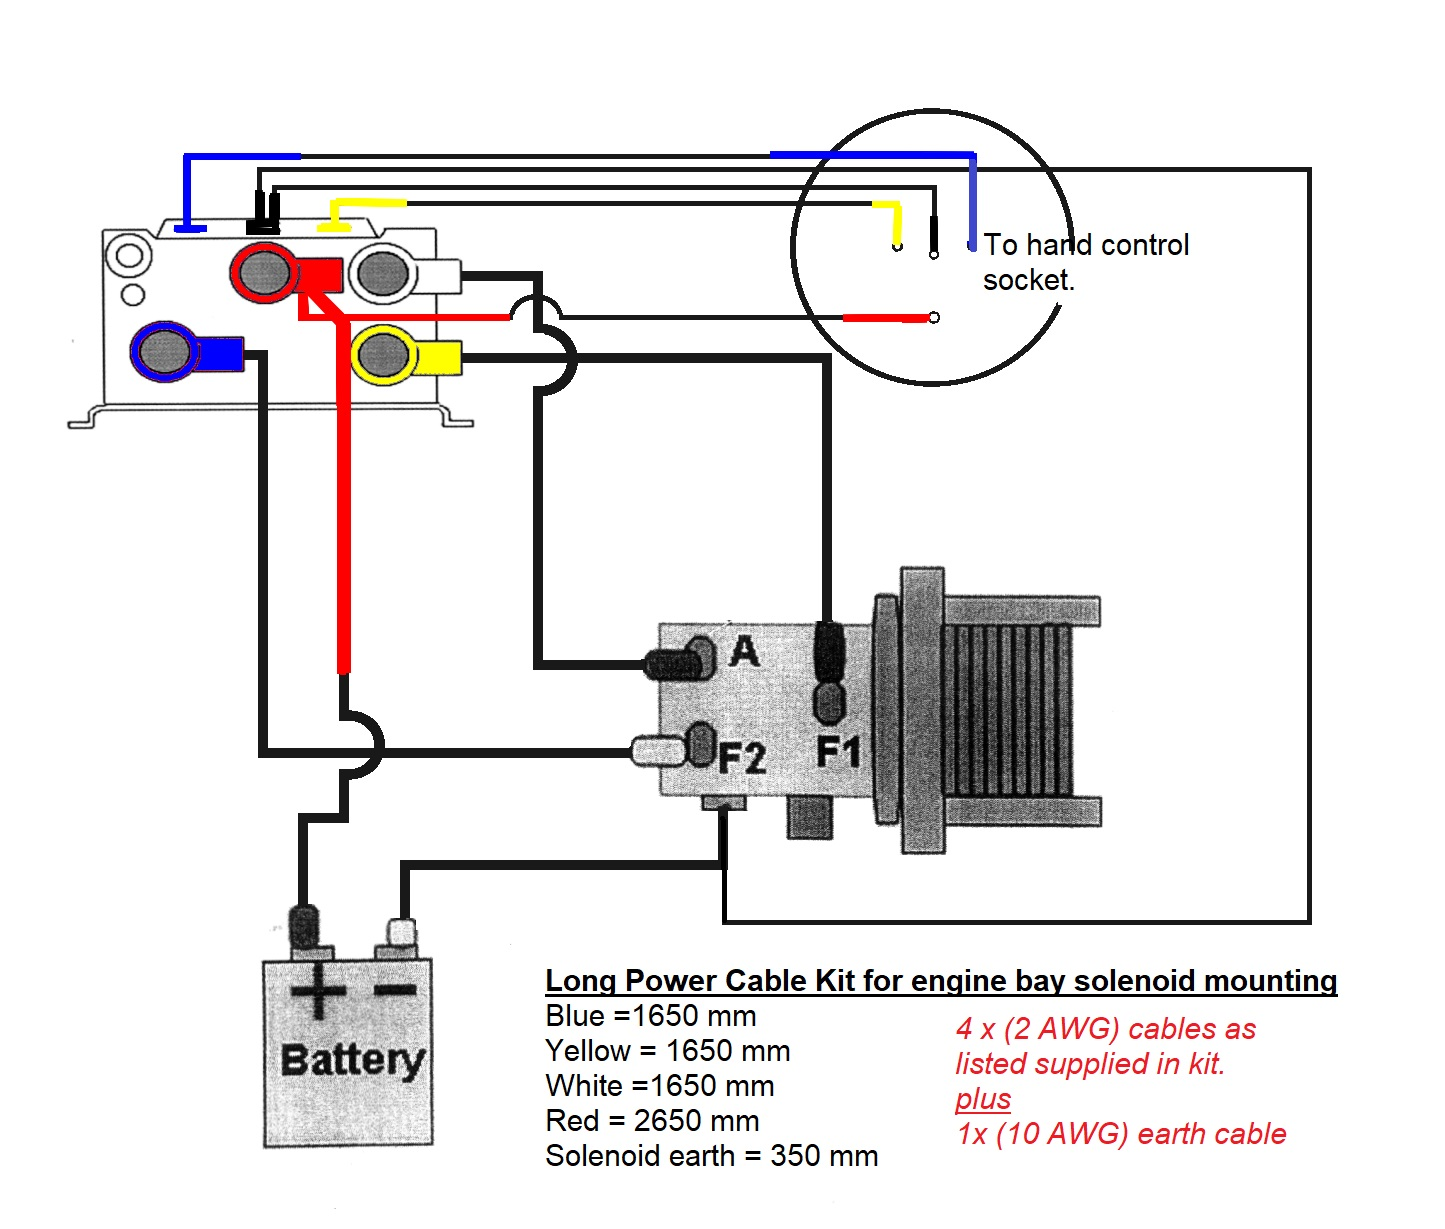 Electric Winch Wiring Diagram - wiring diagram on the net on